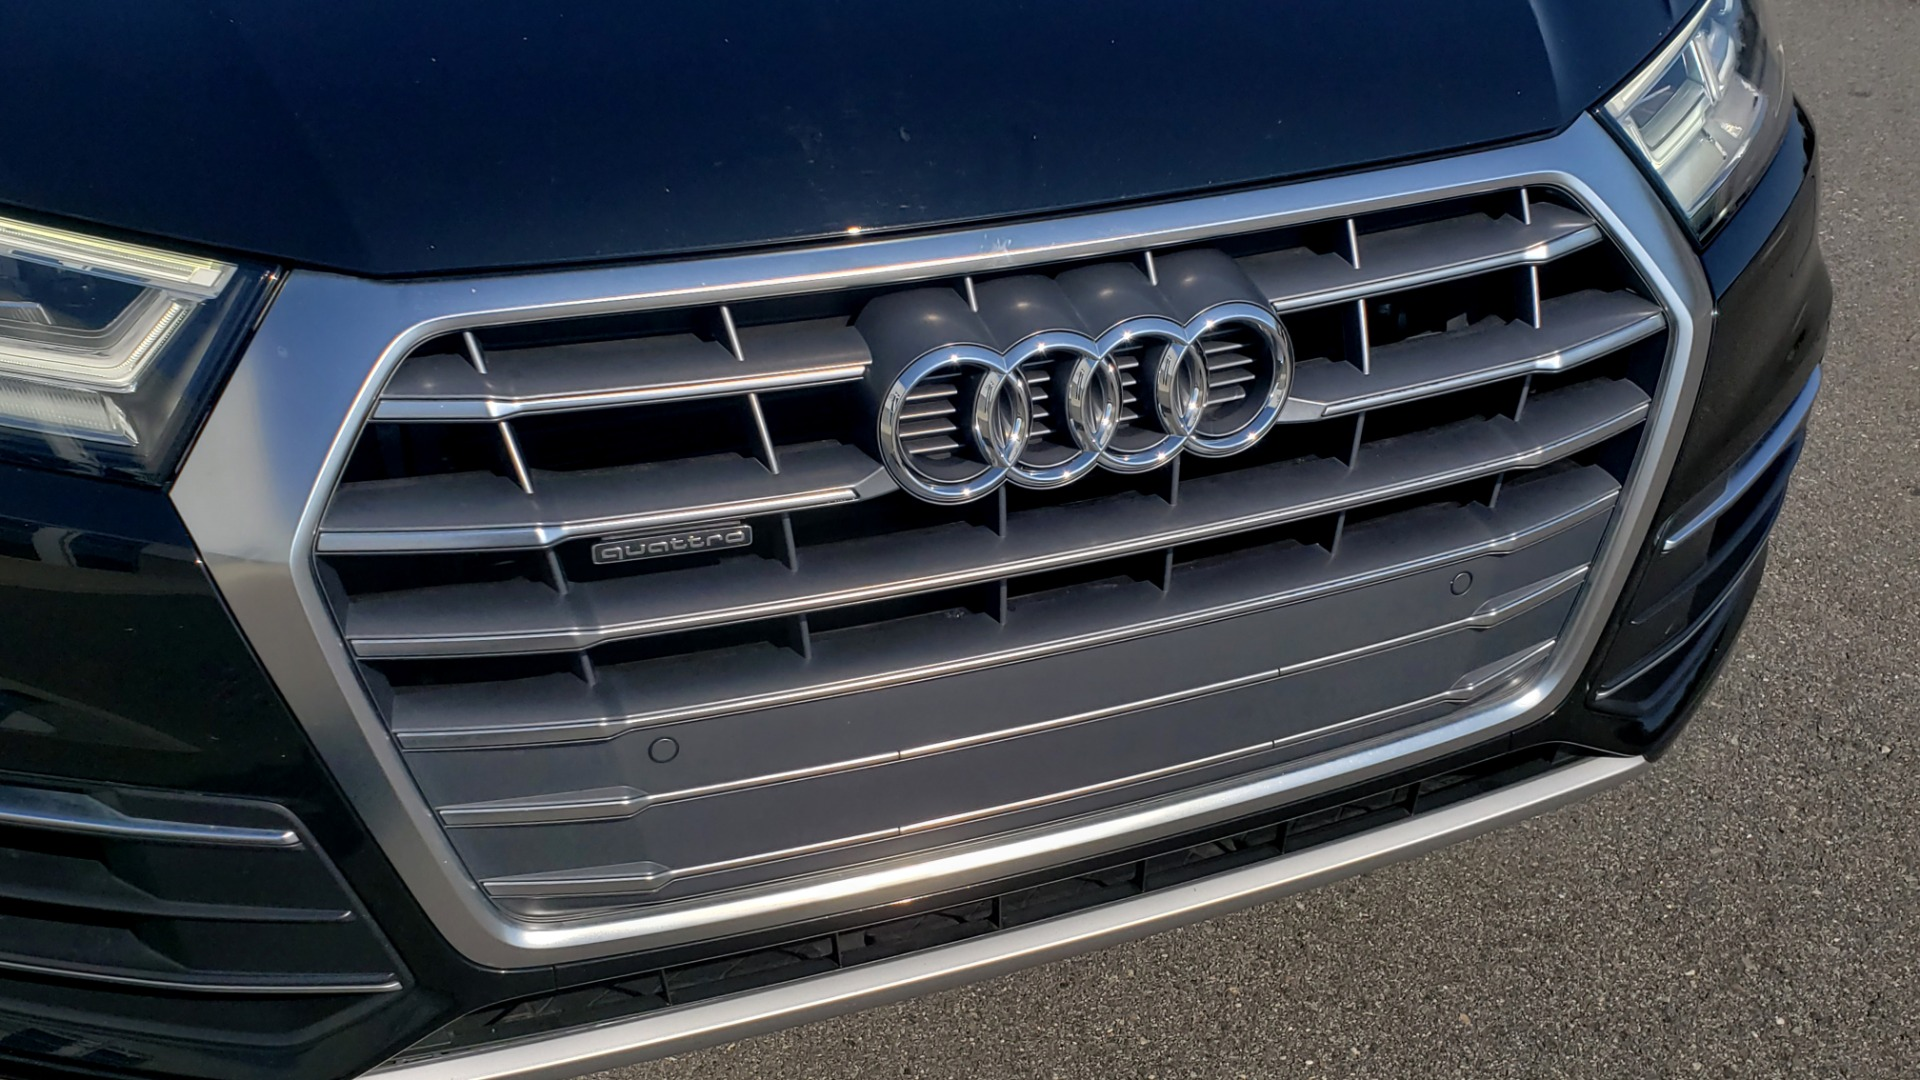 Used 2018 Audi Q5 PREMIUM PLUS / NAV / PANO-ROOF / CLD WTHR / REARVIEW for sale $30,435 at Formula Imports in Charlotte NC 28227 23